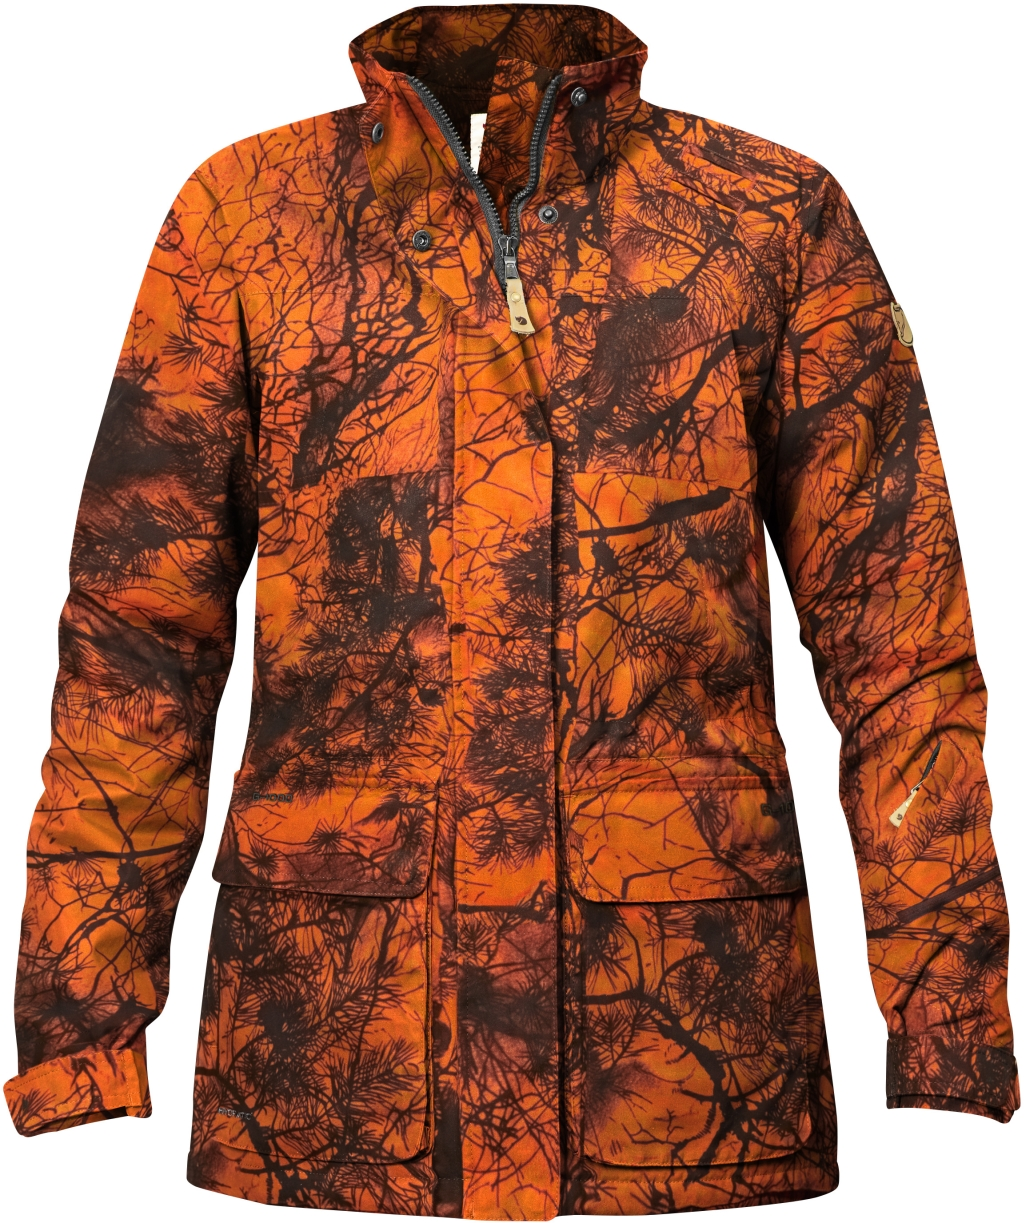 FjallRaven Brenner Pro Padded Jacket Camo W Orange Camo-30